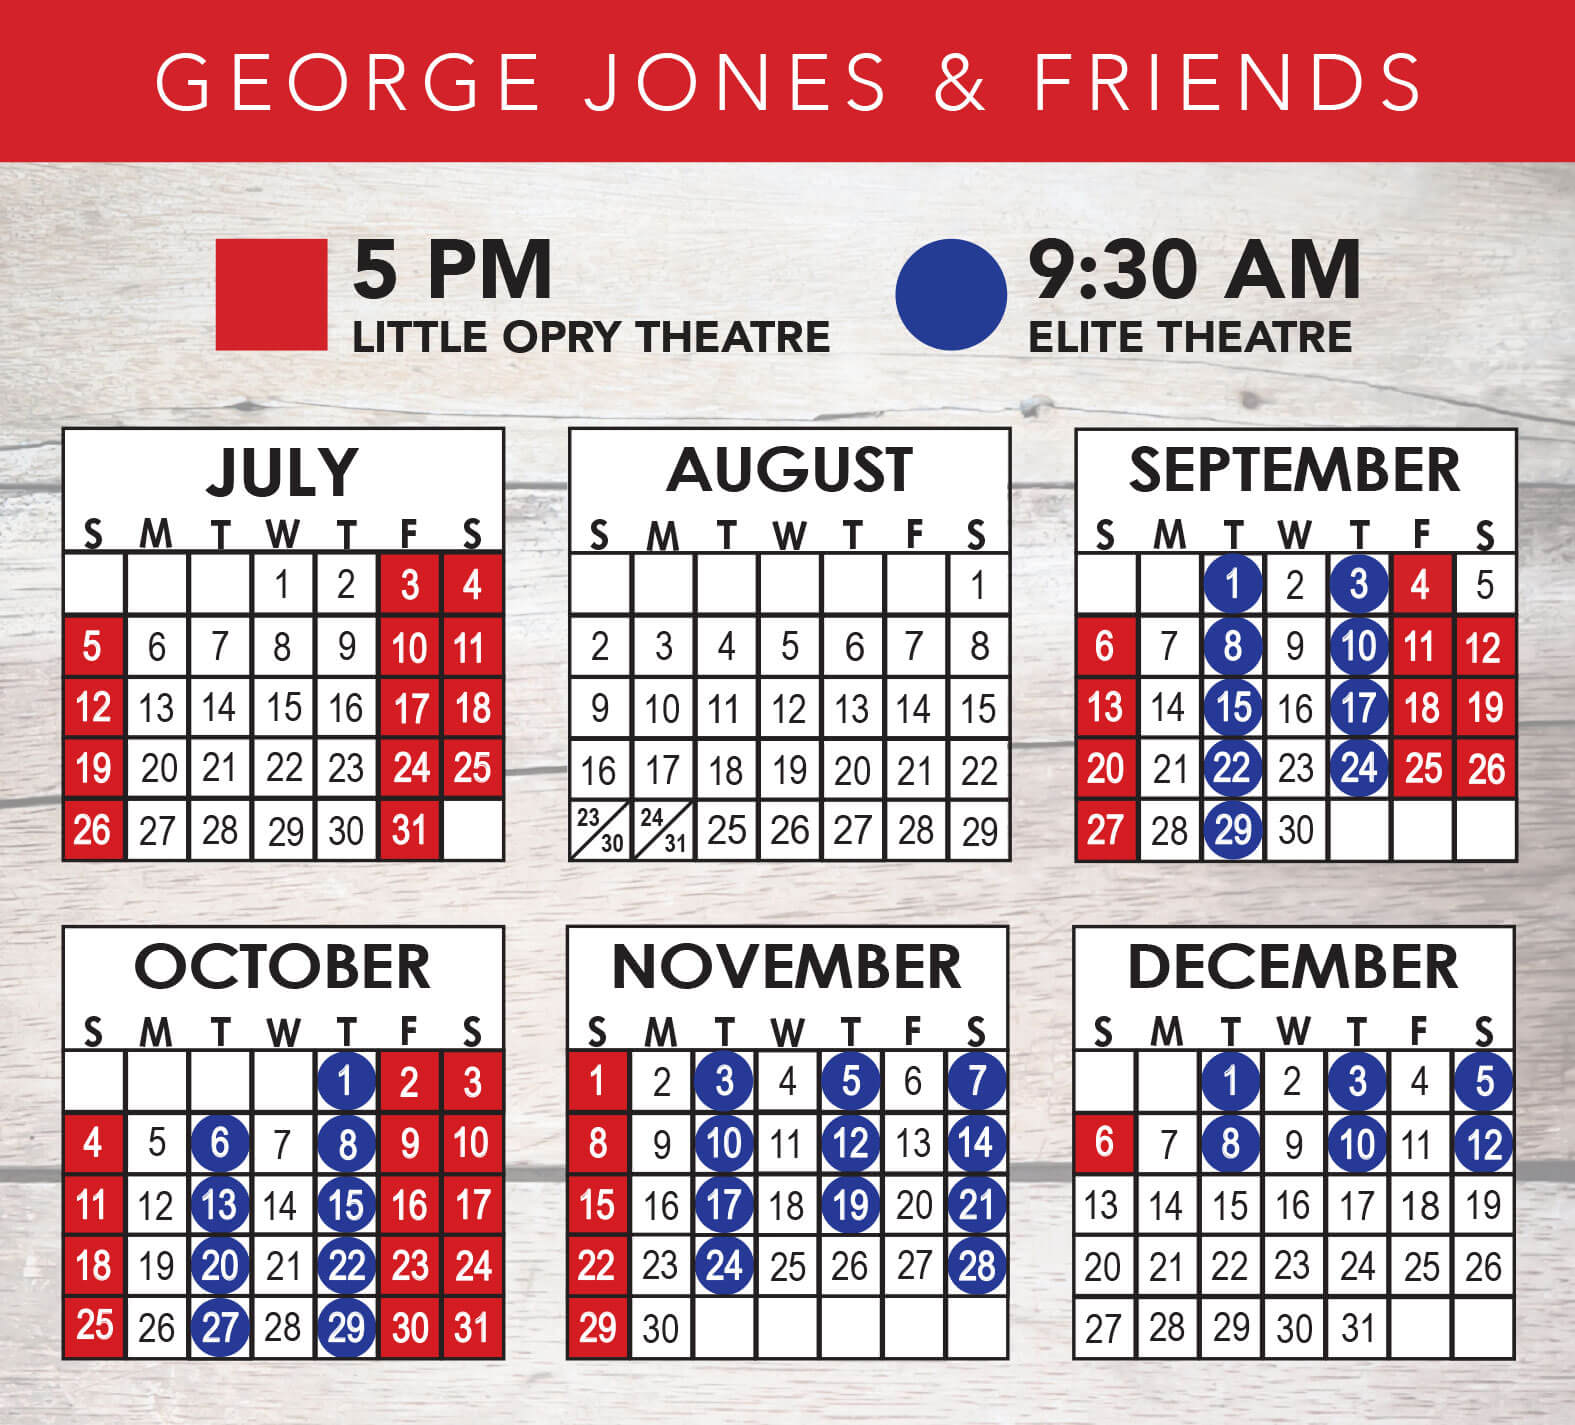 George Jones & Friends 2020 Calendar